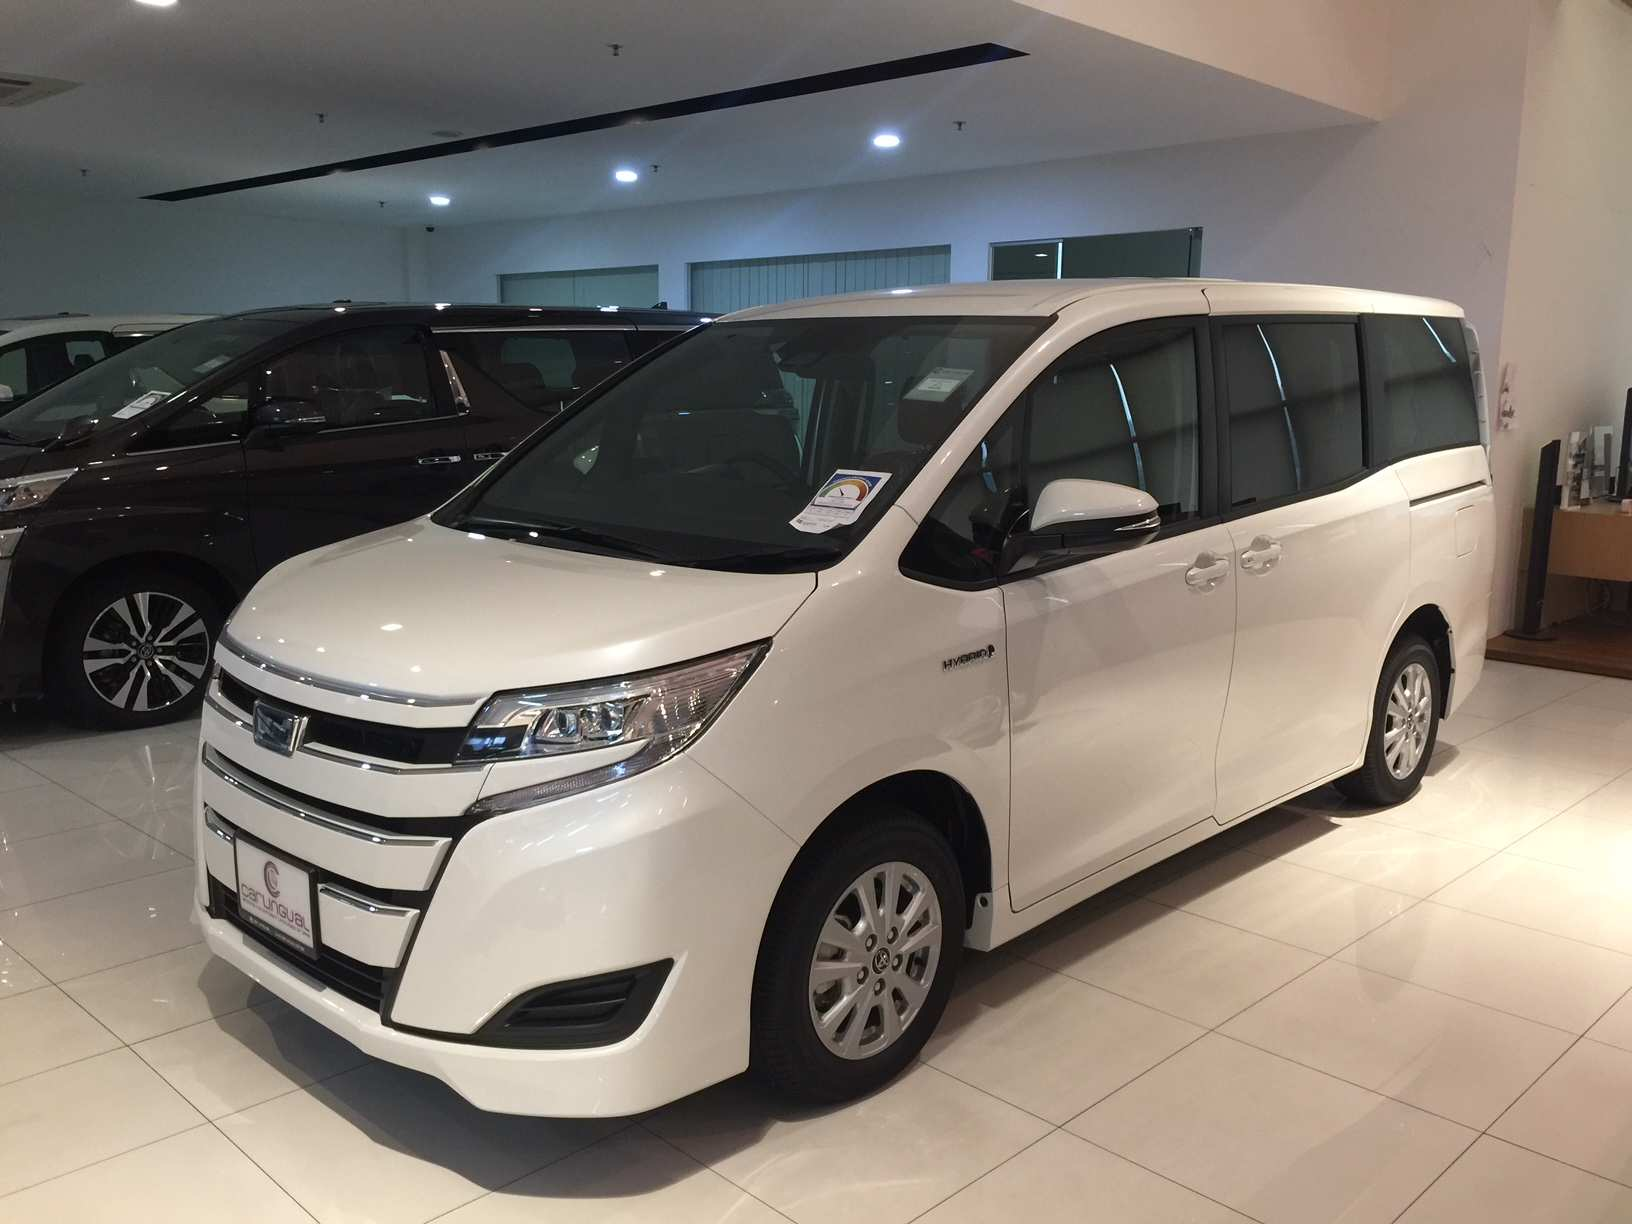 80 The Best 2019 Toyota Noah Exterior And Interior